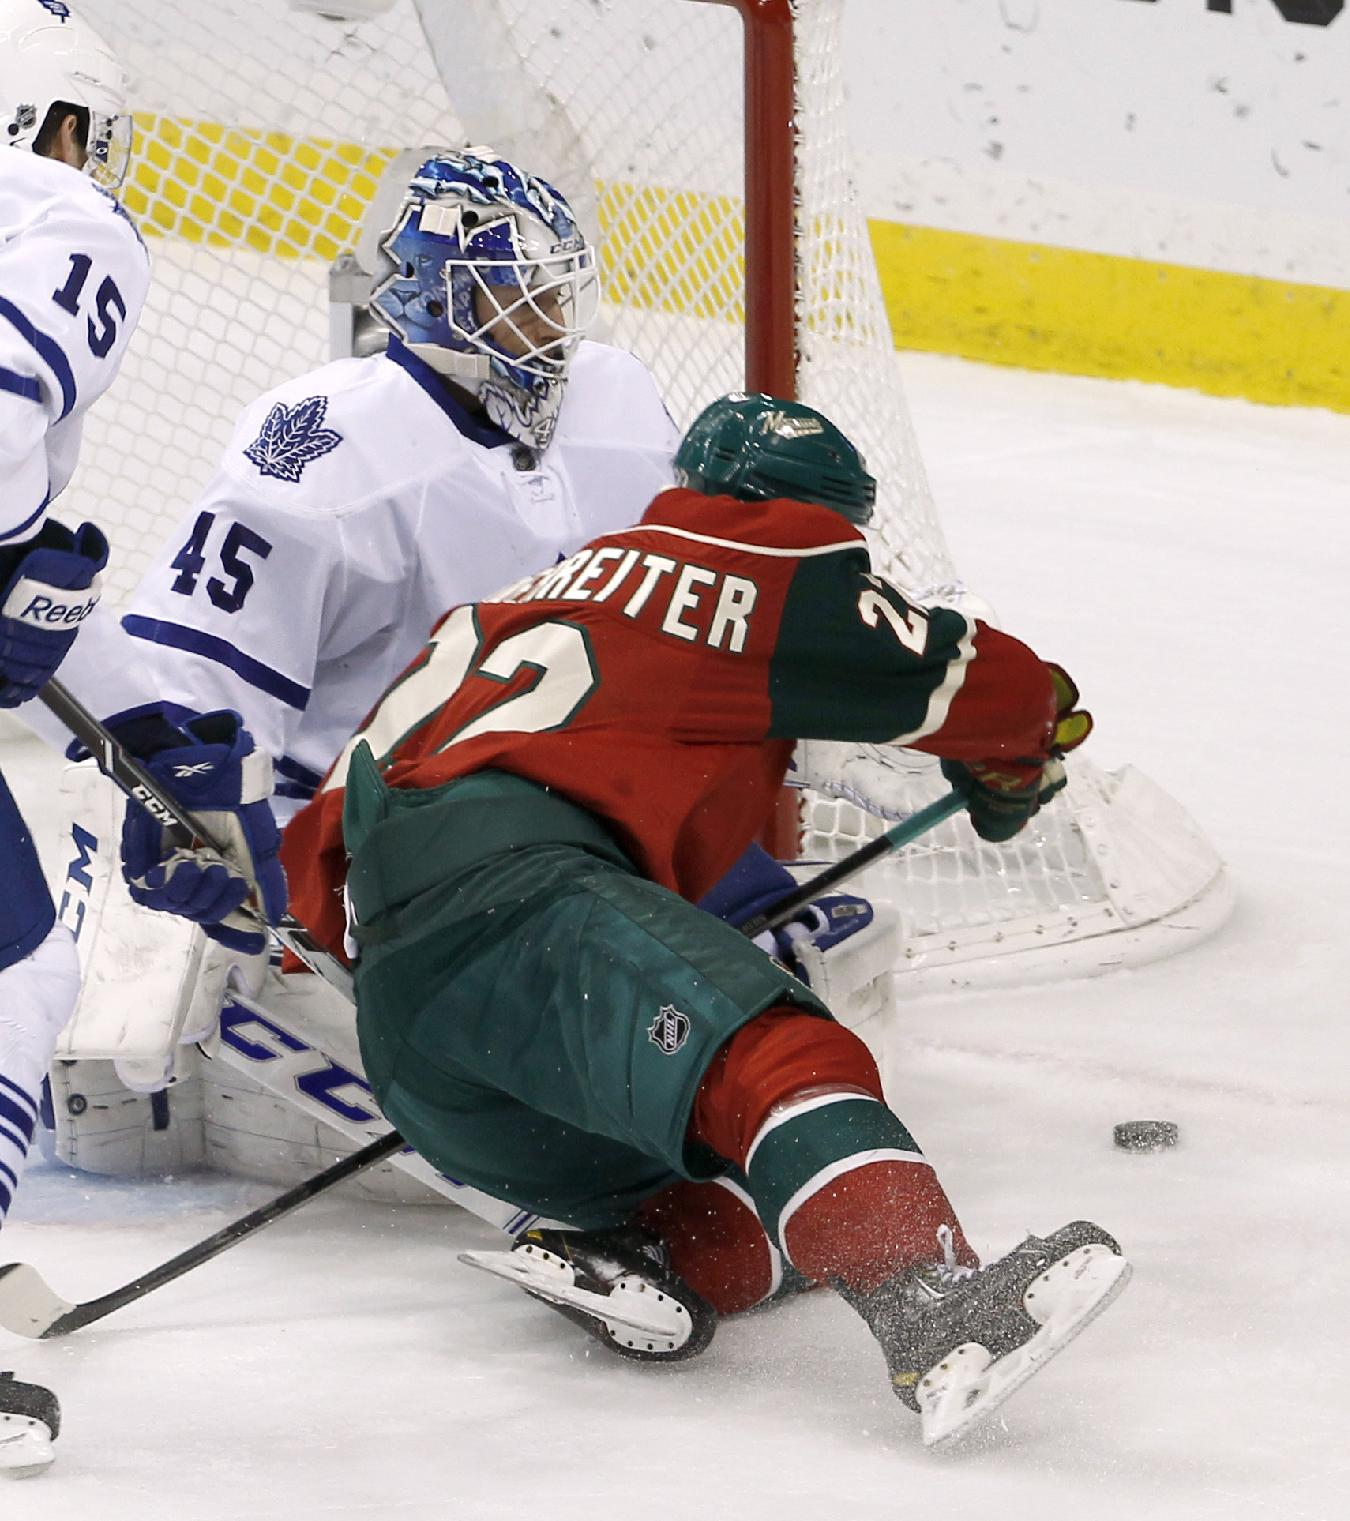 Minnesota Wild right wing Nino Niederreiter, right, of Switzerland, collides with Toronto Maple Leafs goalie Jonathan Bernier while chasing the puck during the first period of an NHL hockey game in St. Paul, Minn., Wednesday, Nov. 13, 2013